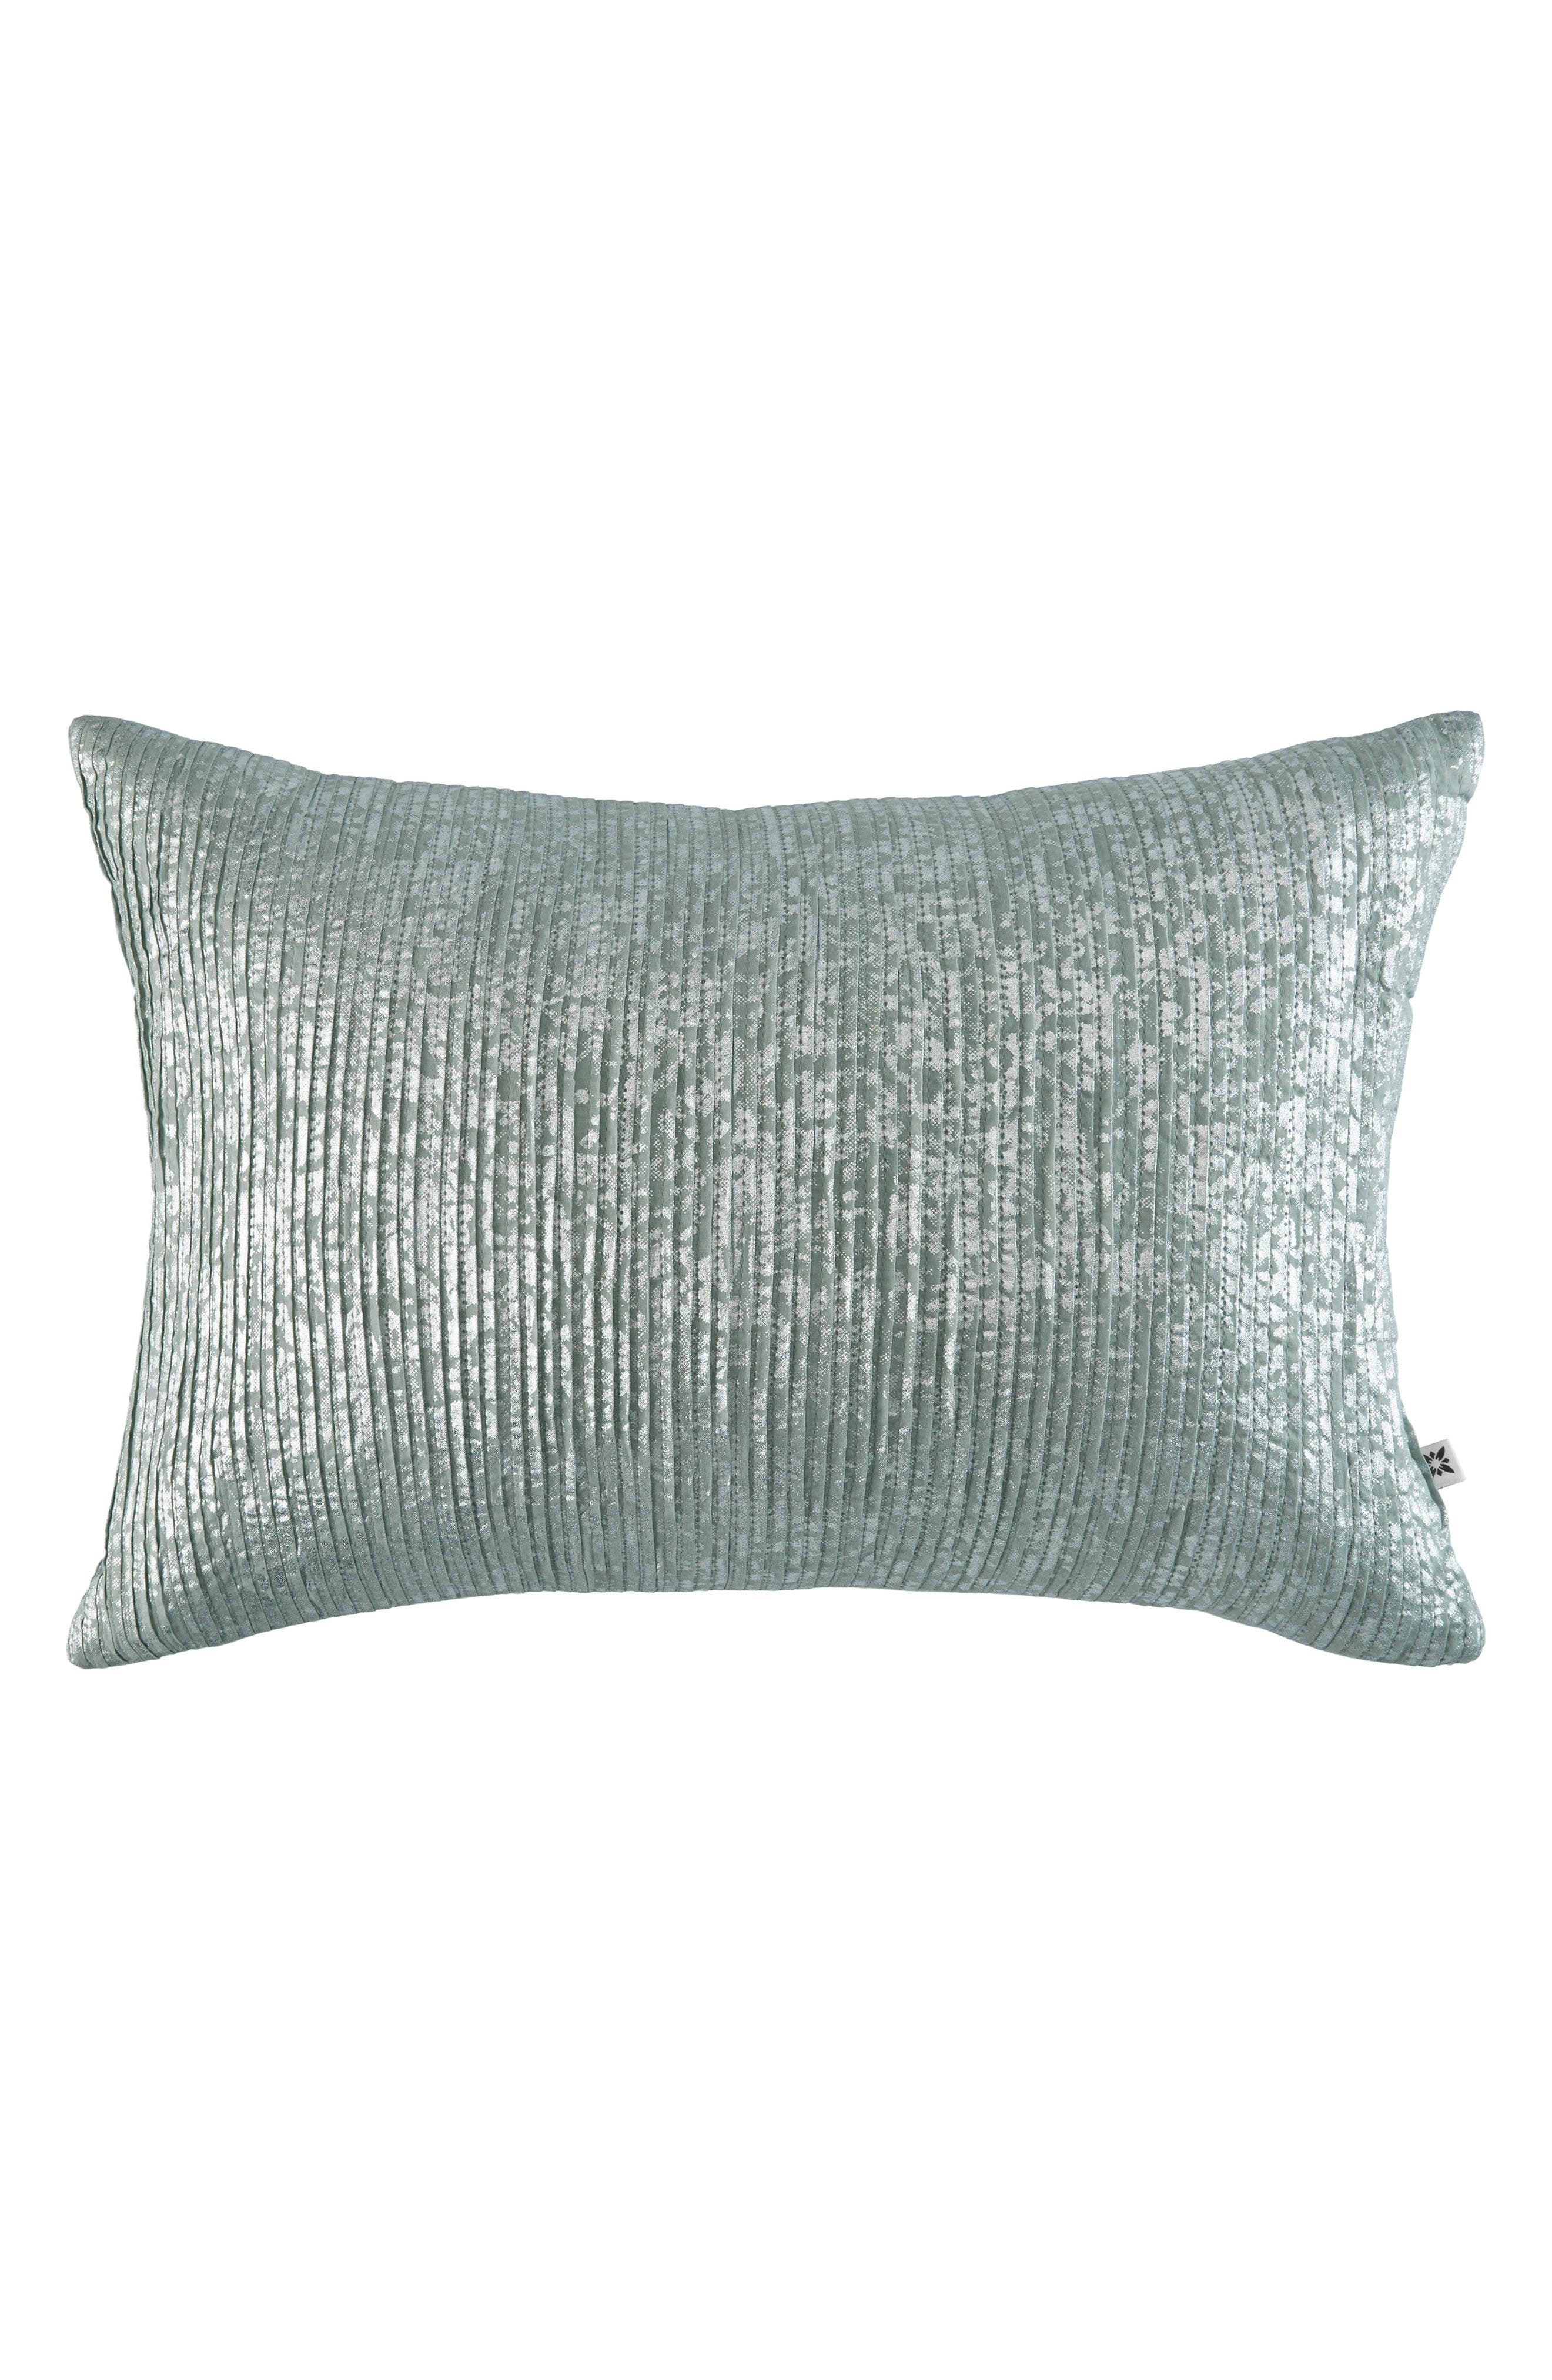 Metallic Ruched Accent Pillow,                         Main,                         color, Open Blue